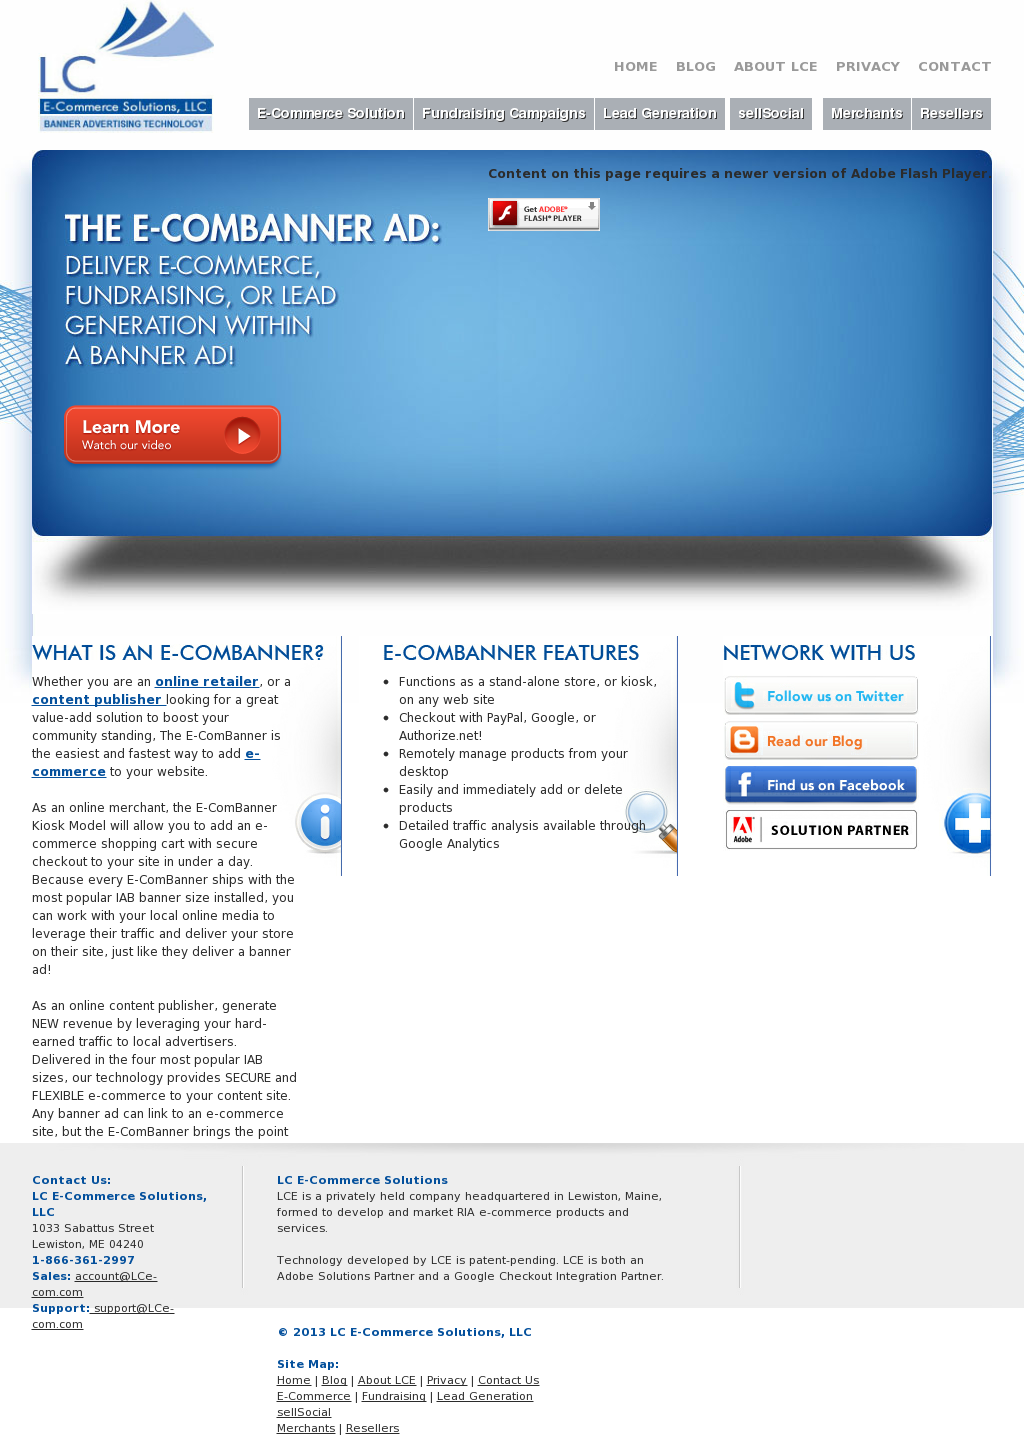 Lc E-commerce Solutions Competitors, Revenue and Employees